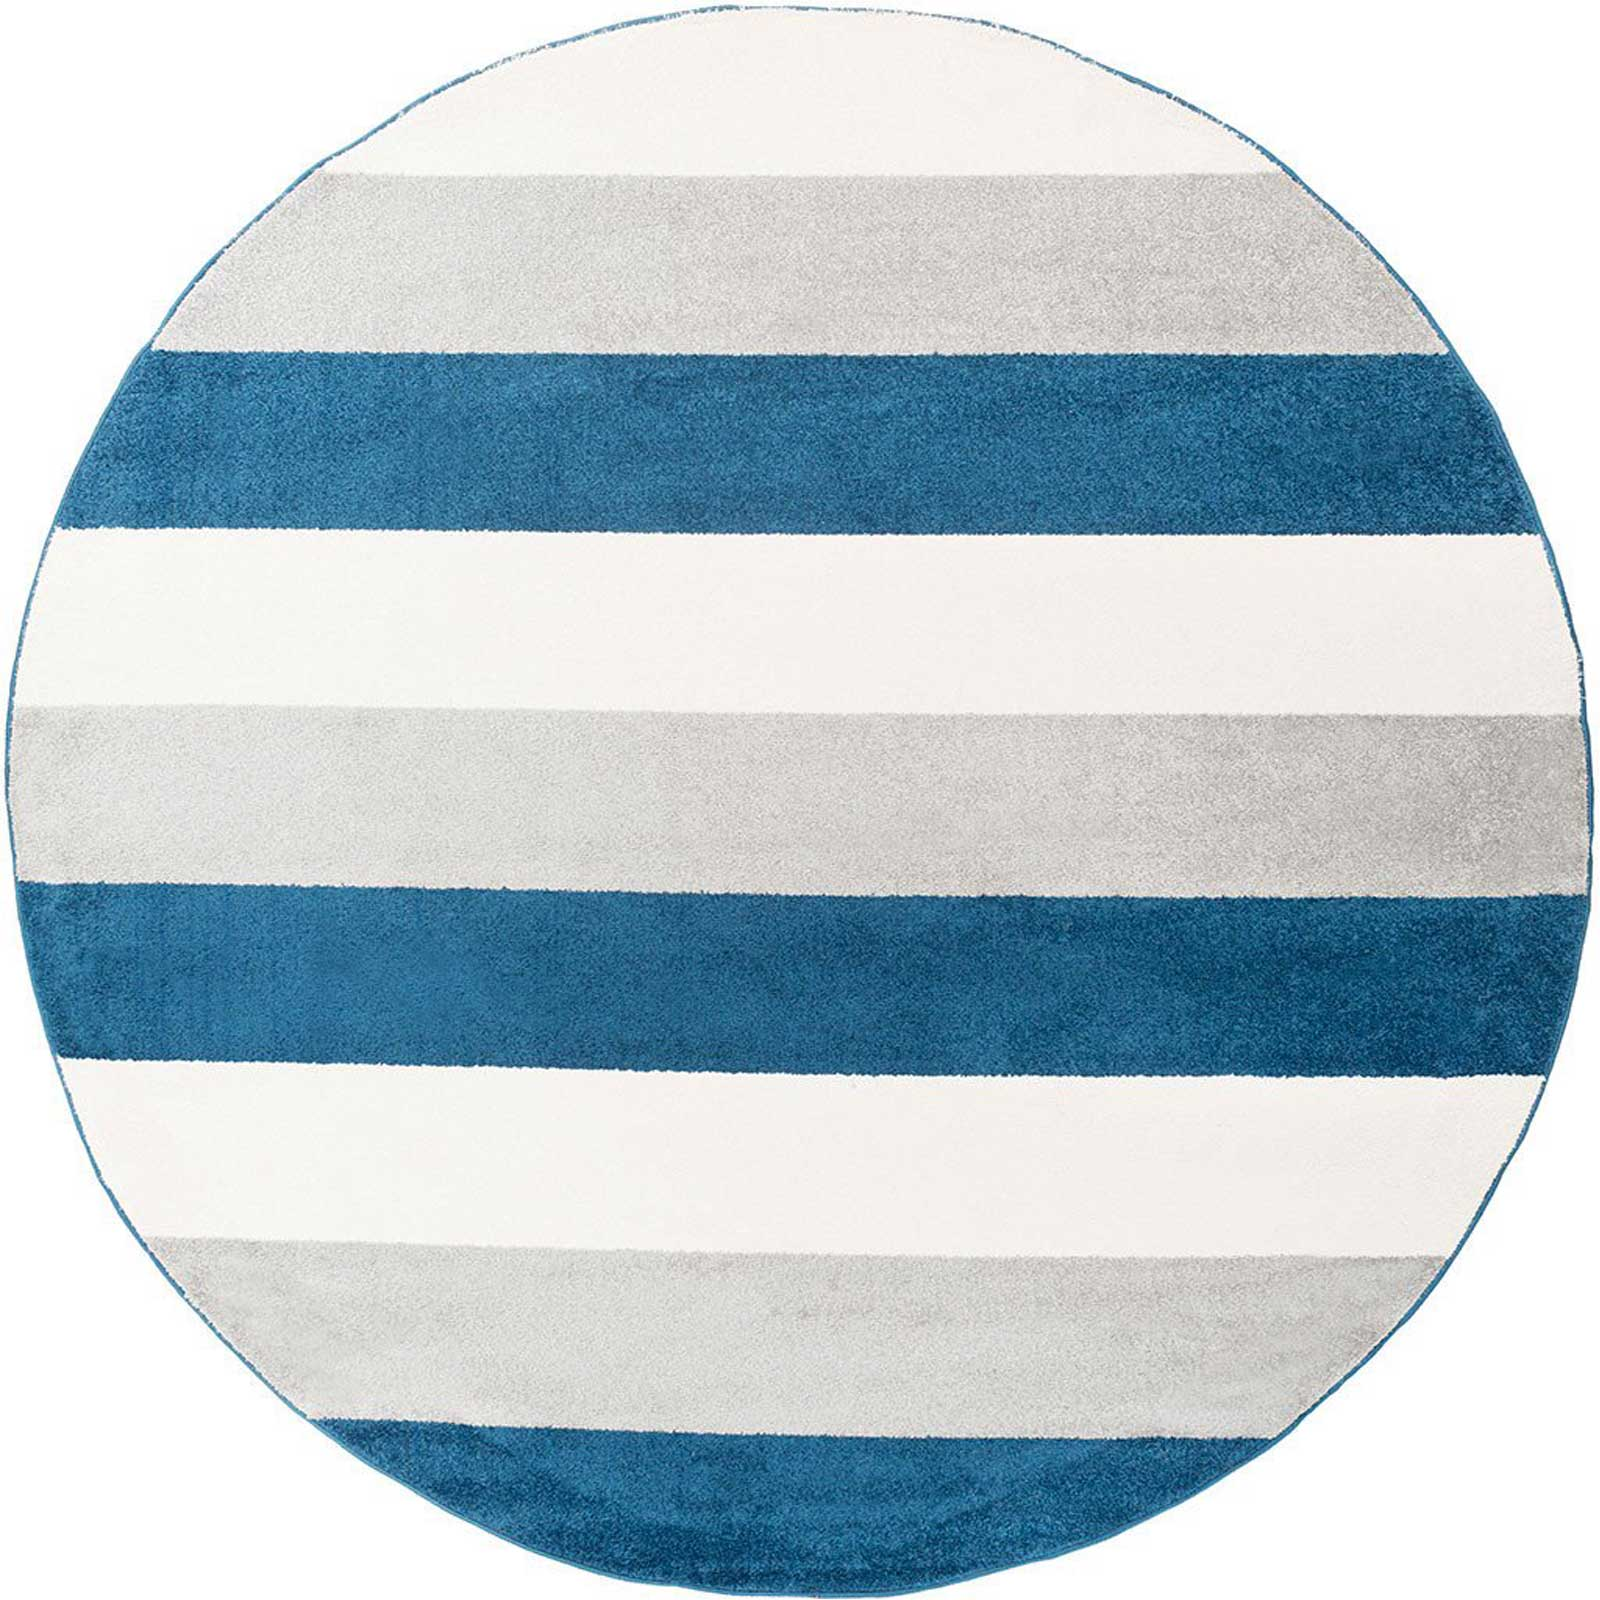 Horizon Striped Cobalt/Gray Round Rug